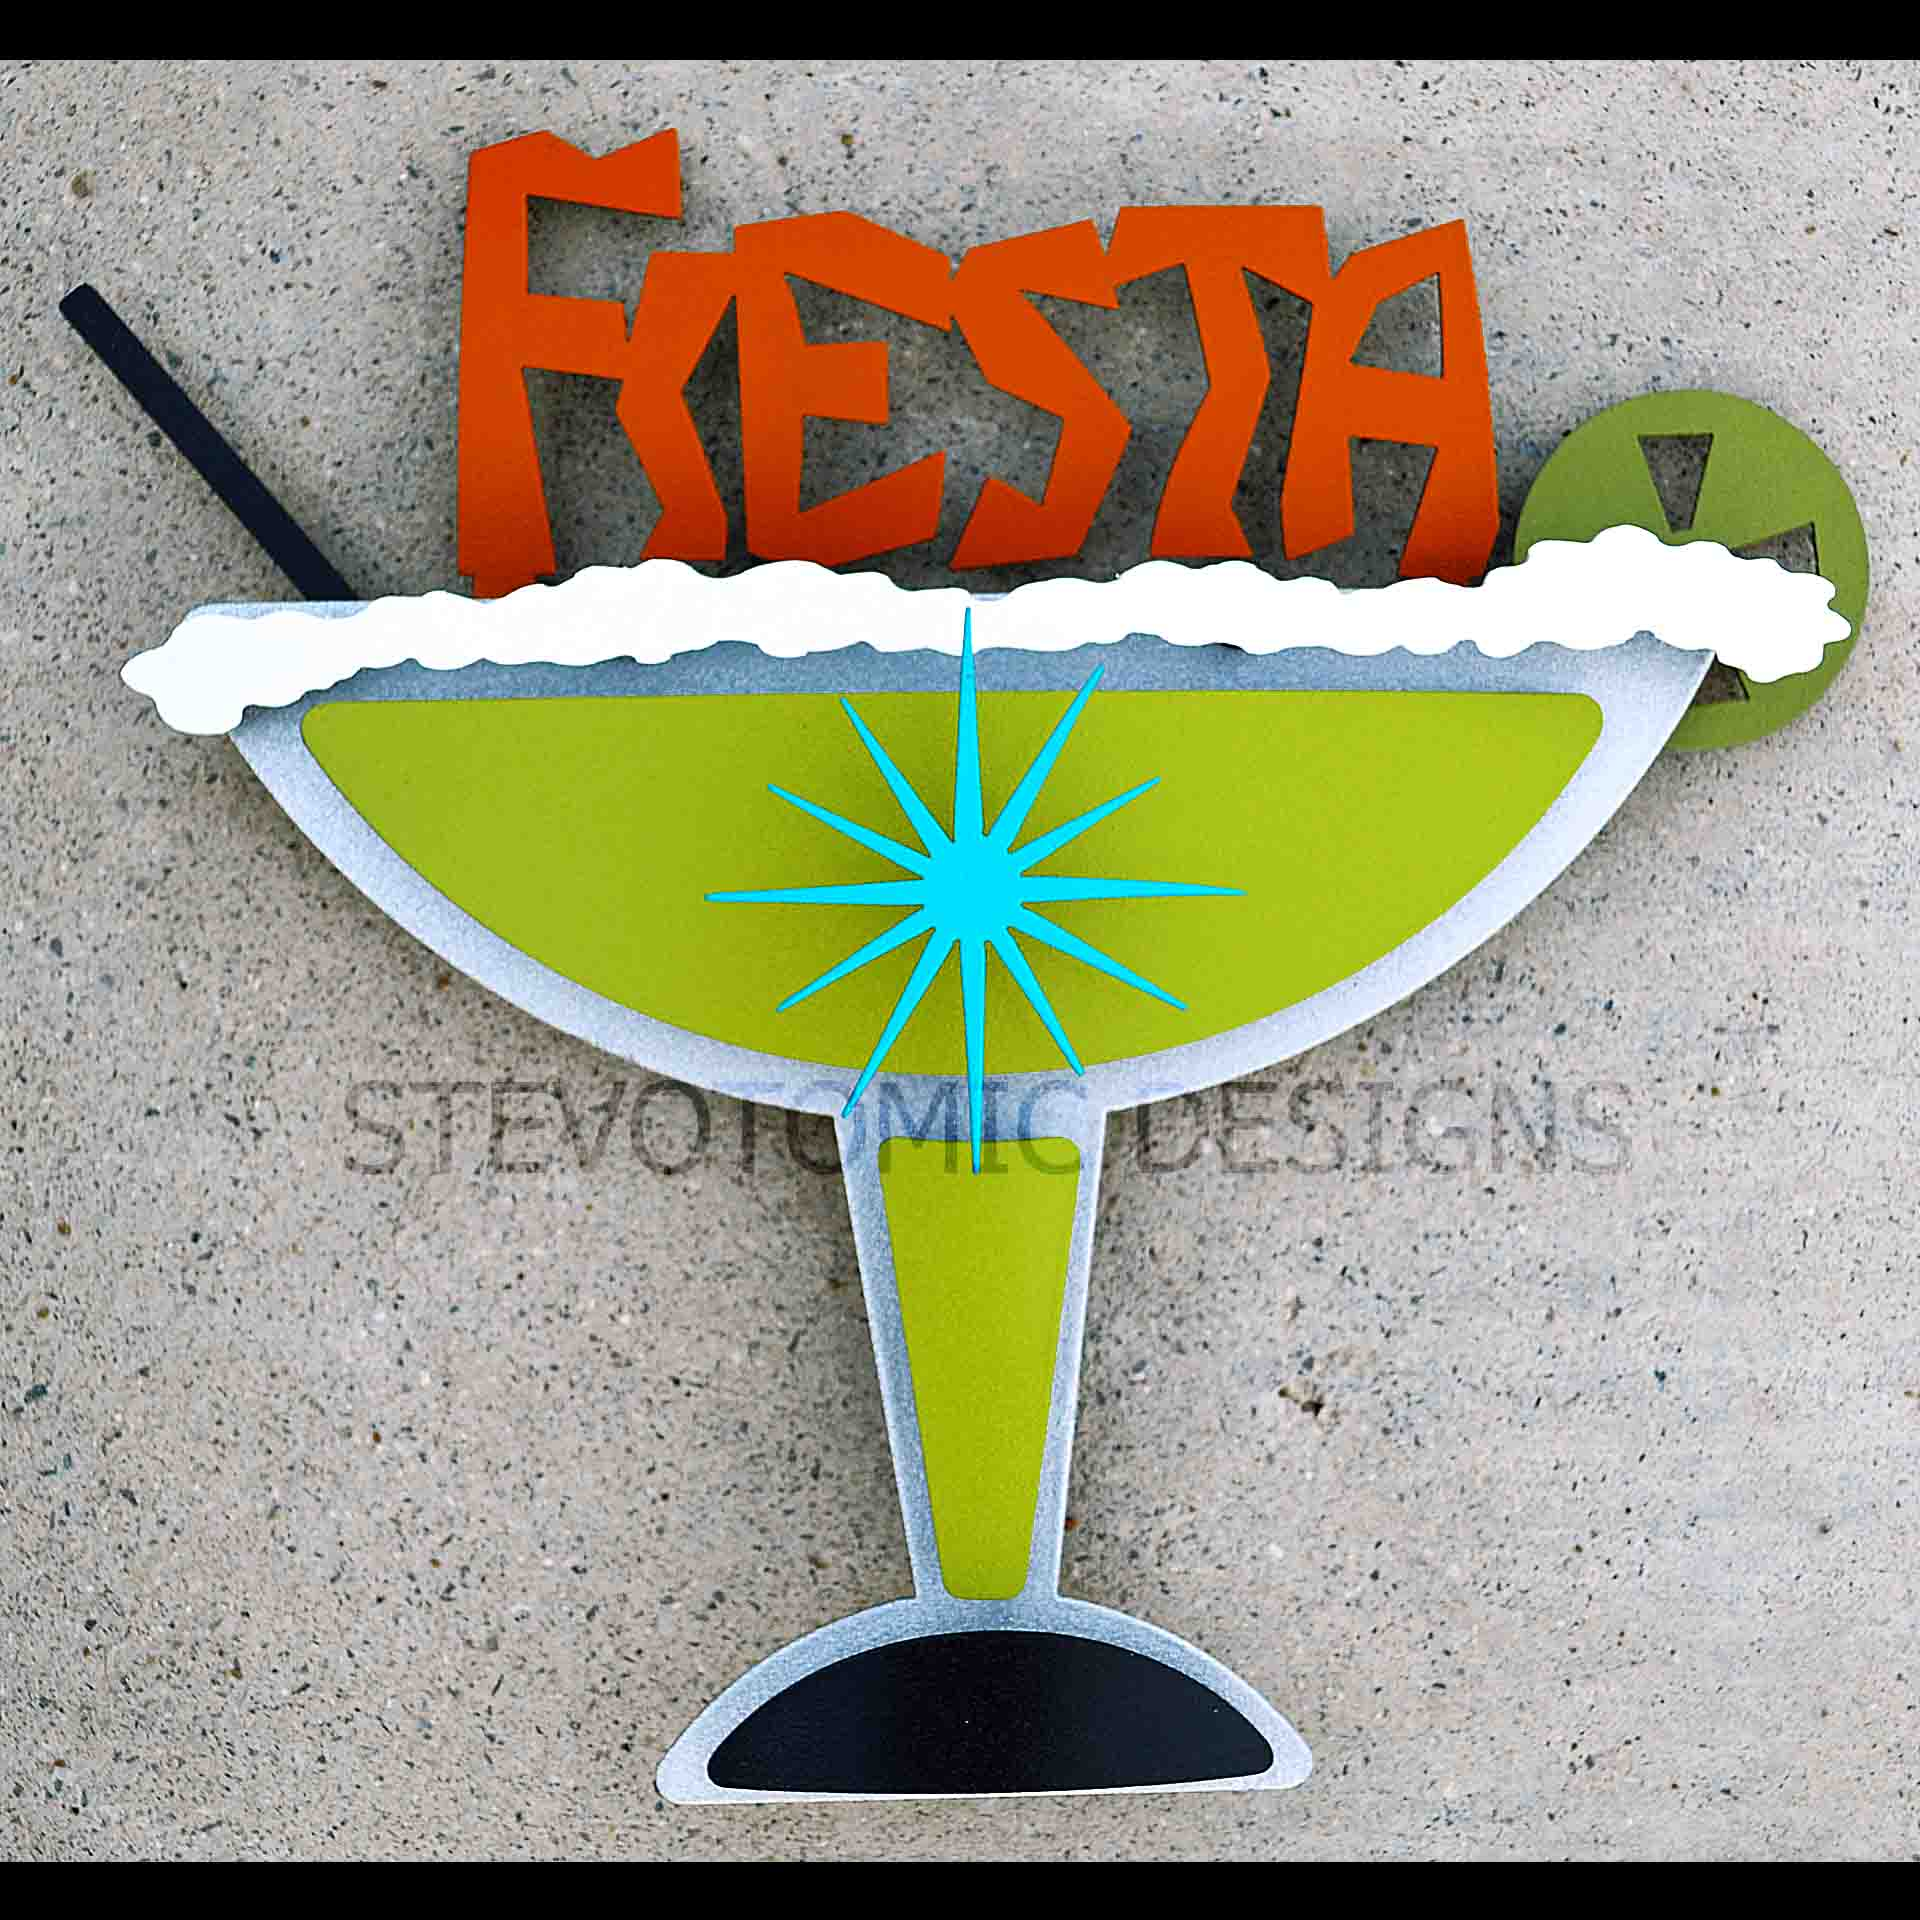 FIESTA-BAR-ART-0013